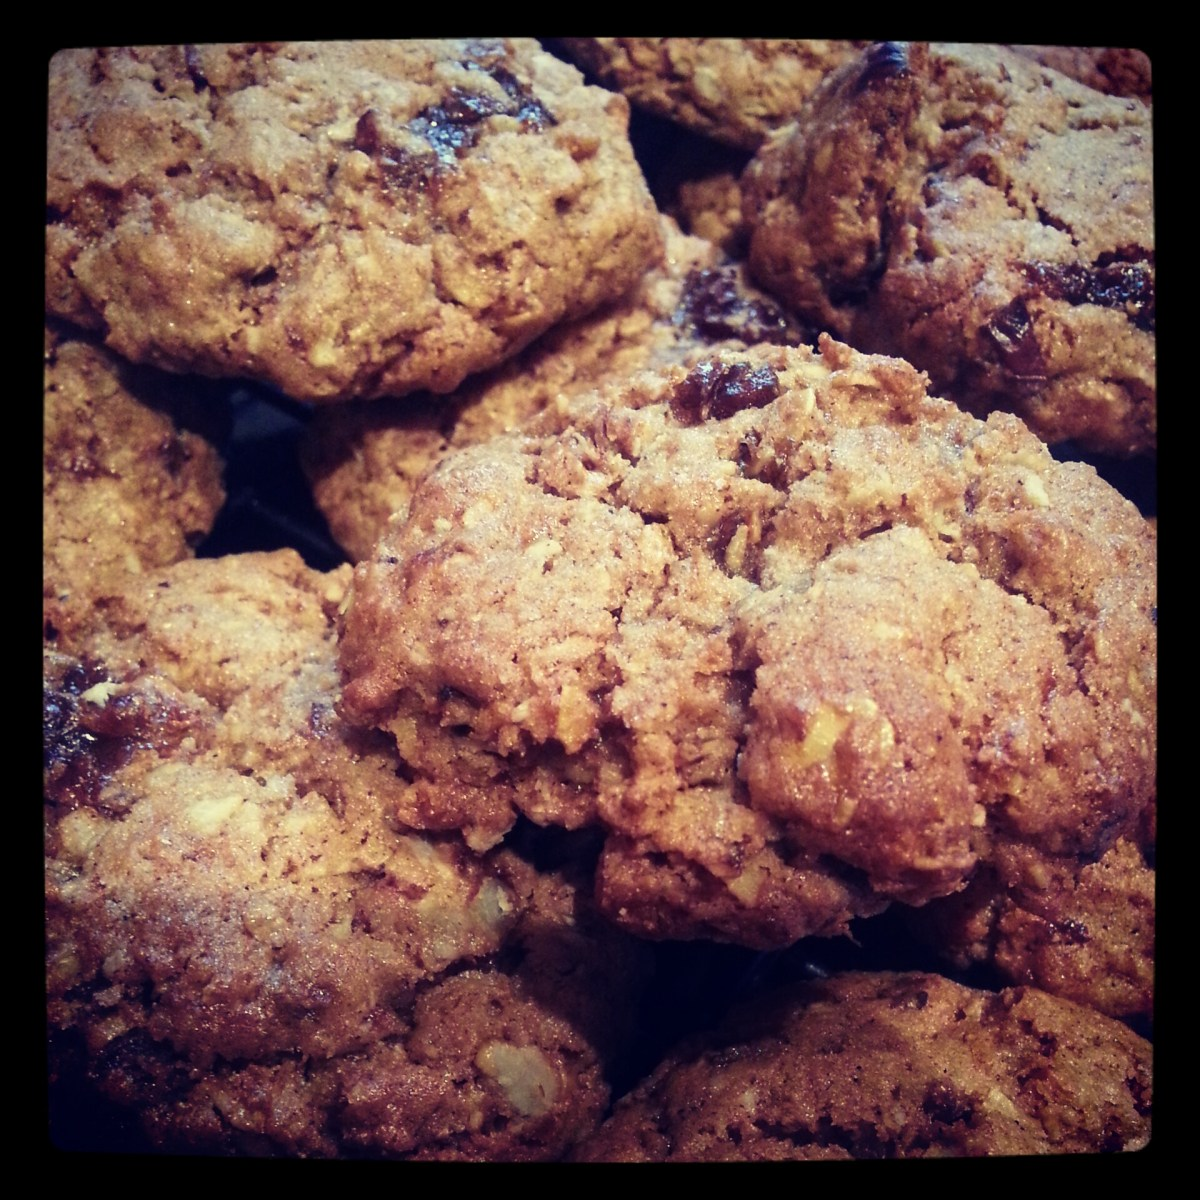 Oat and raisin biscuits